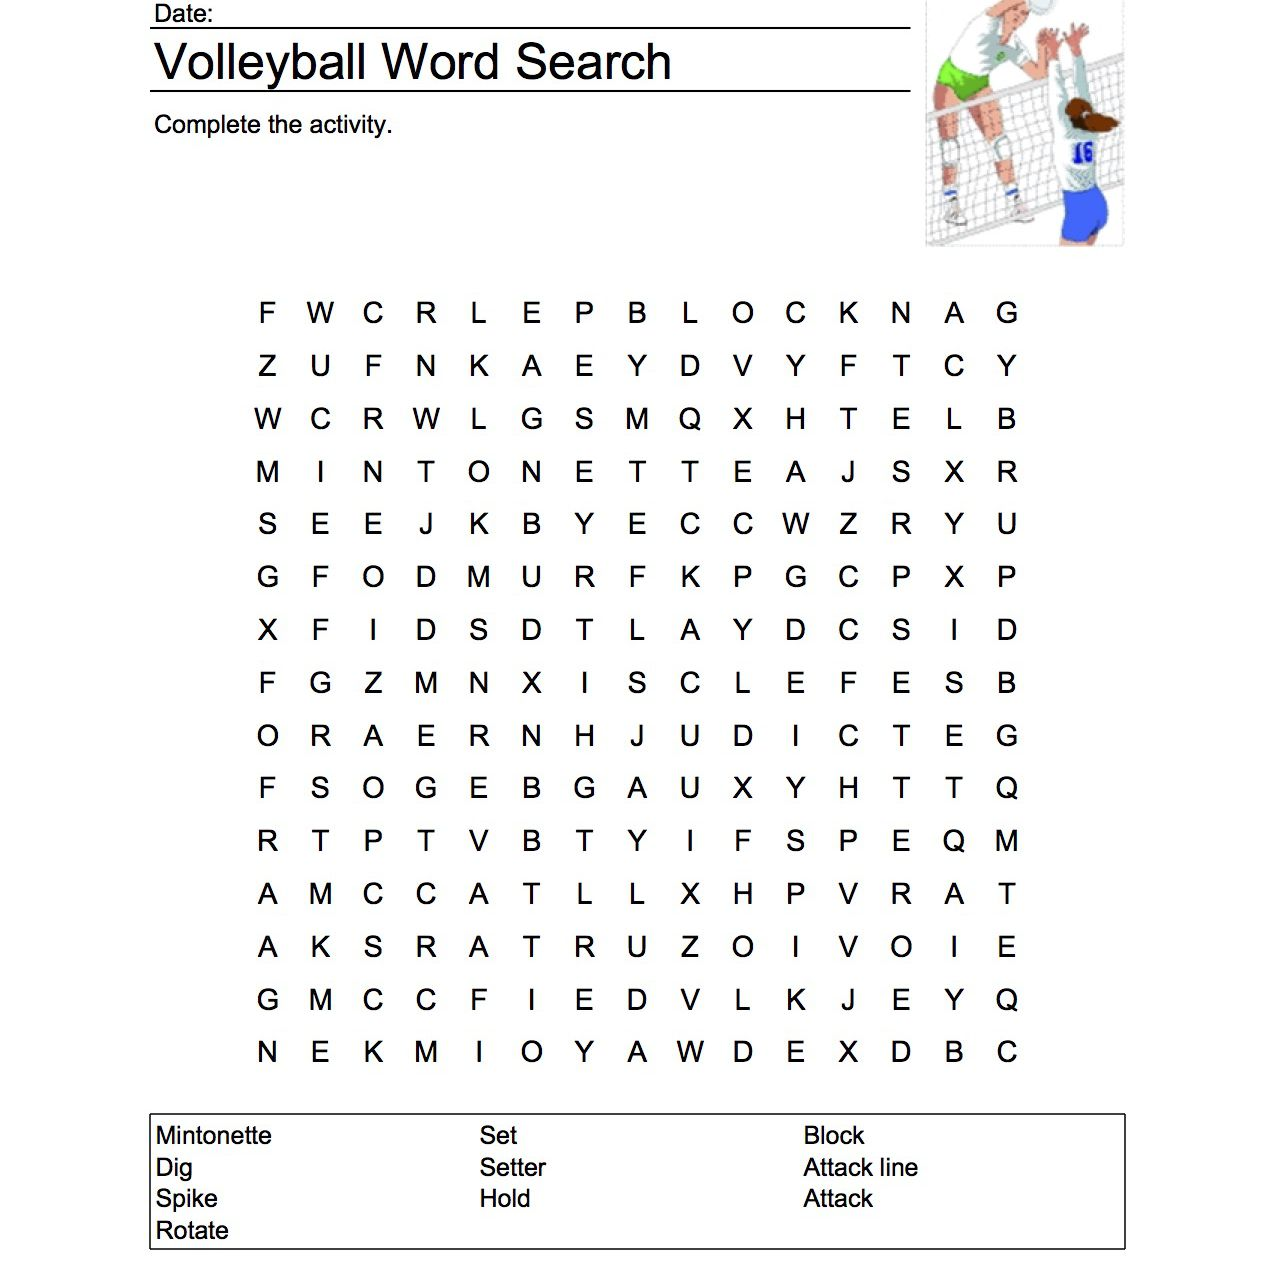 Volleyball Word Search Vocabulary Crossword And More